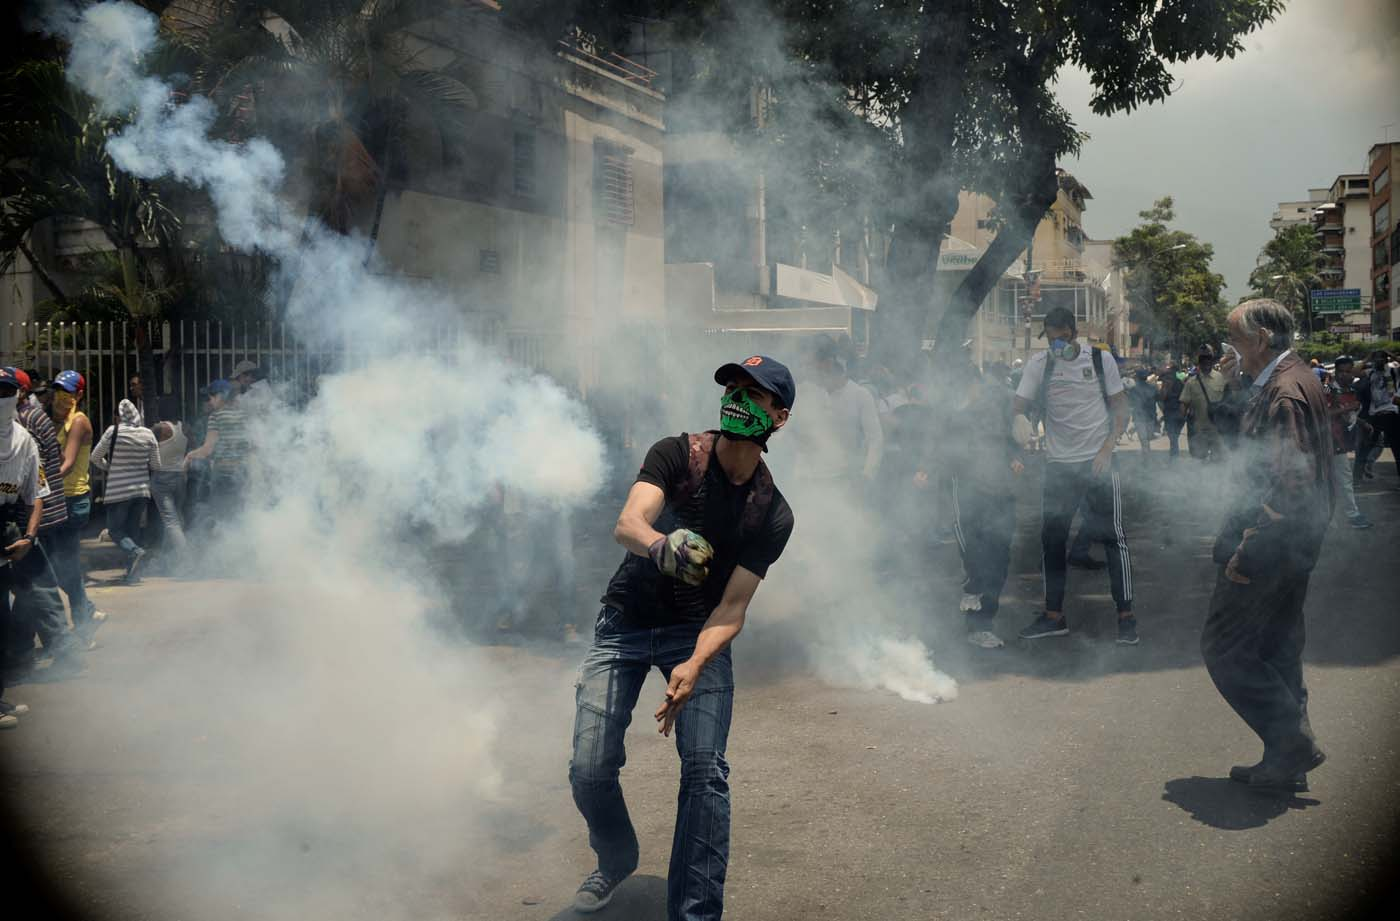 Demonstrators clash with the riot police during a protest against Venezuelan President Nicolas Maduro, in Caracas on April 20, 2017. Venezuelan riot police fired tear gas Thursday at groups of protesters seeking to oust President Nicolas Maduro, who have vowed new mass marches after a day of deadly unrest. Police in western Caracas broke up scores of opposition protesters trying to join a larger march, though there was no immediate repeat of Wednesday's violent clashes, which left three people dead. / AFP PHOTO / Federico PARRA